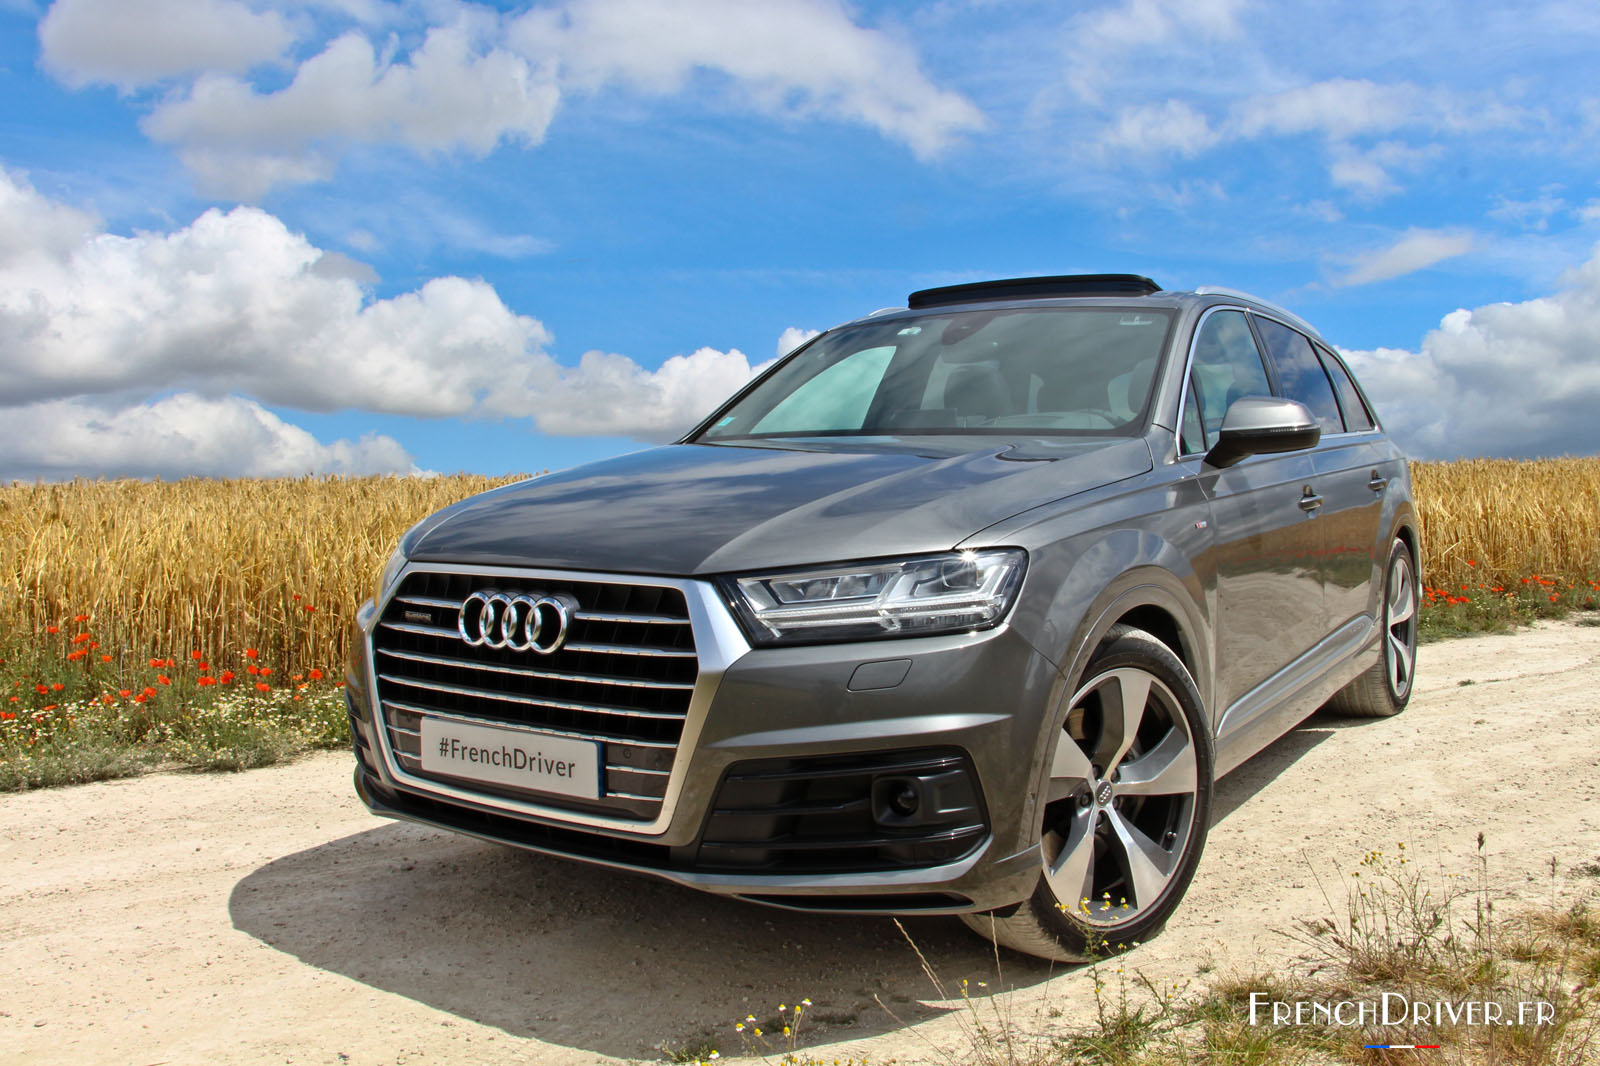 essai de la nouvelle audi q7 concentr de technologies french driver. Black Bedroom Furniture Sets. Home Design Ideas